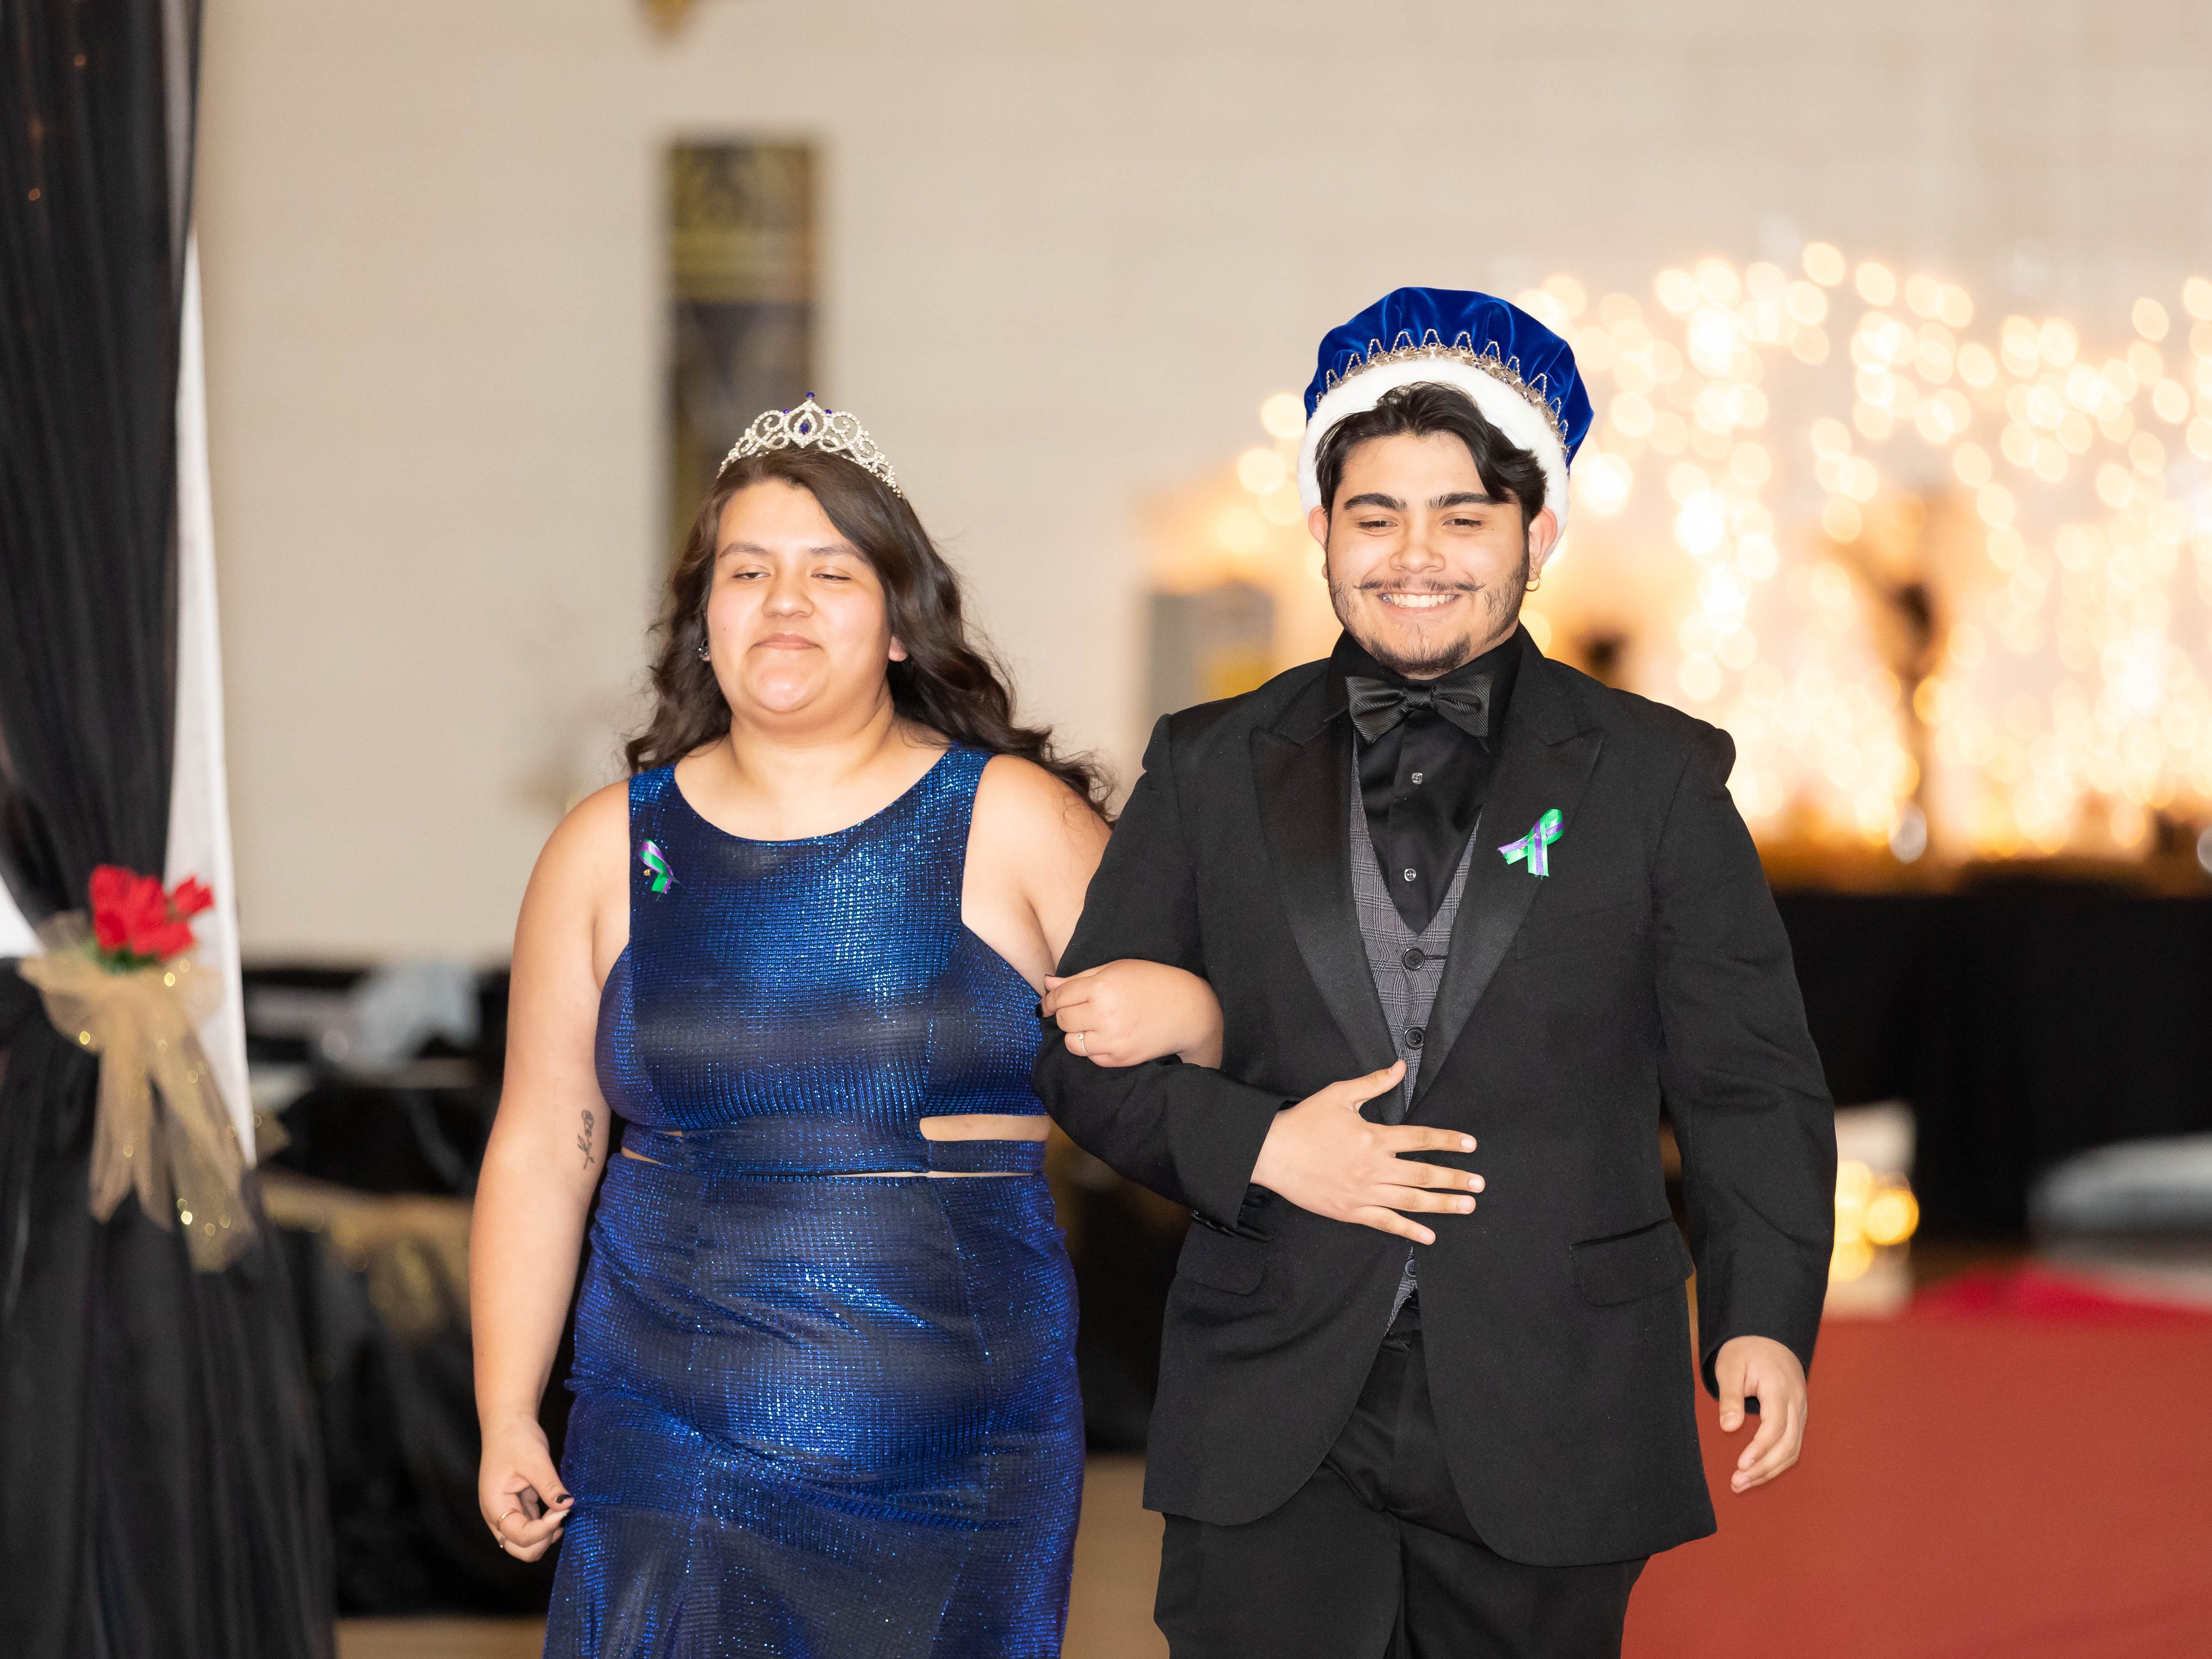 Jazmin Gonzalez and Adrian Rodriguez, the 2018 Nekoosa High School prom queen and king, participate in the grand march on Saturday, April 27, 2019, at Nekoosa High School.